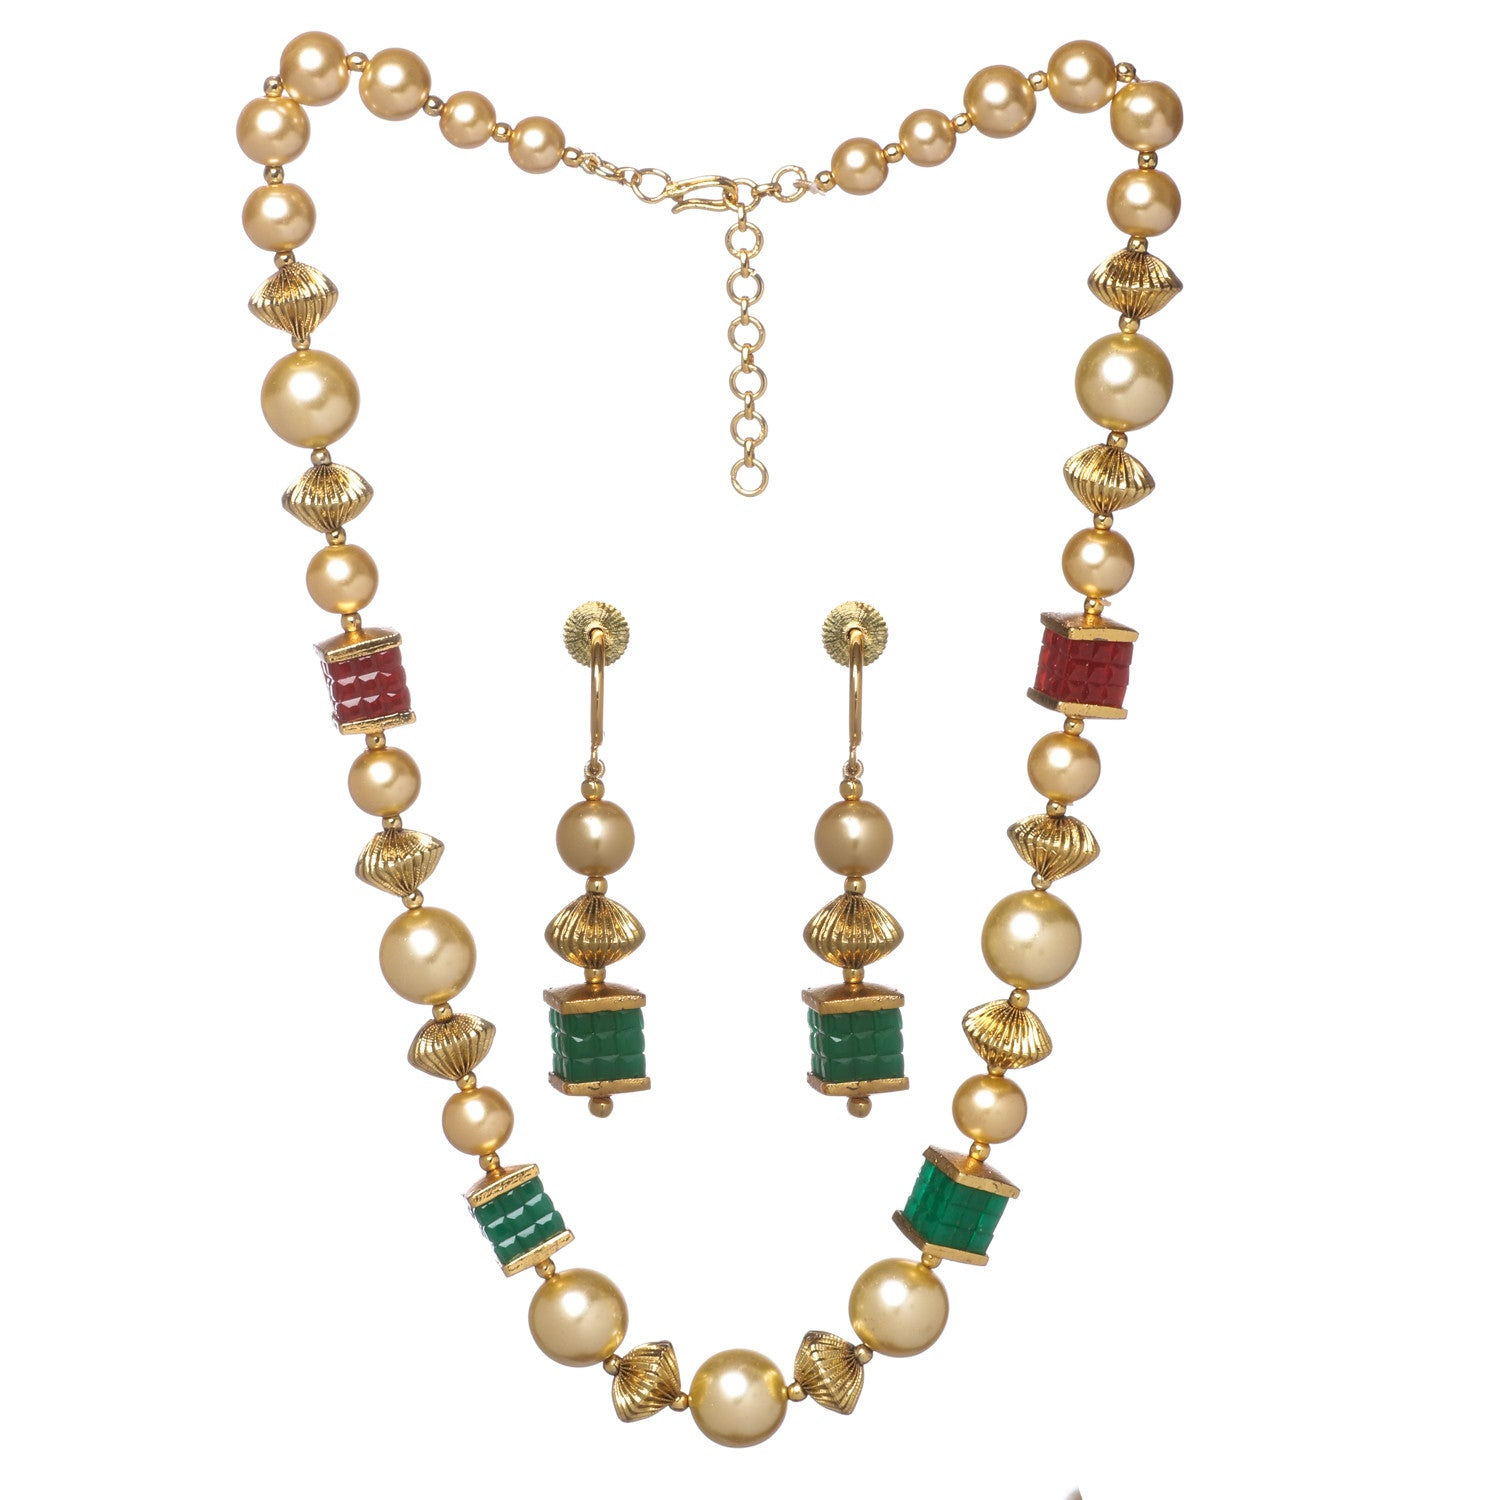 Mesmerizing necklace set with stone and pearls